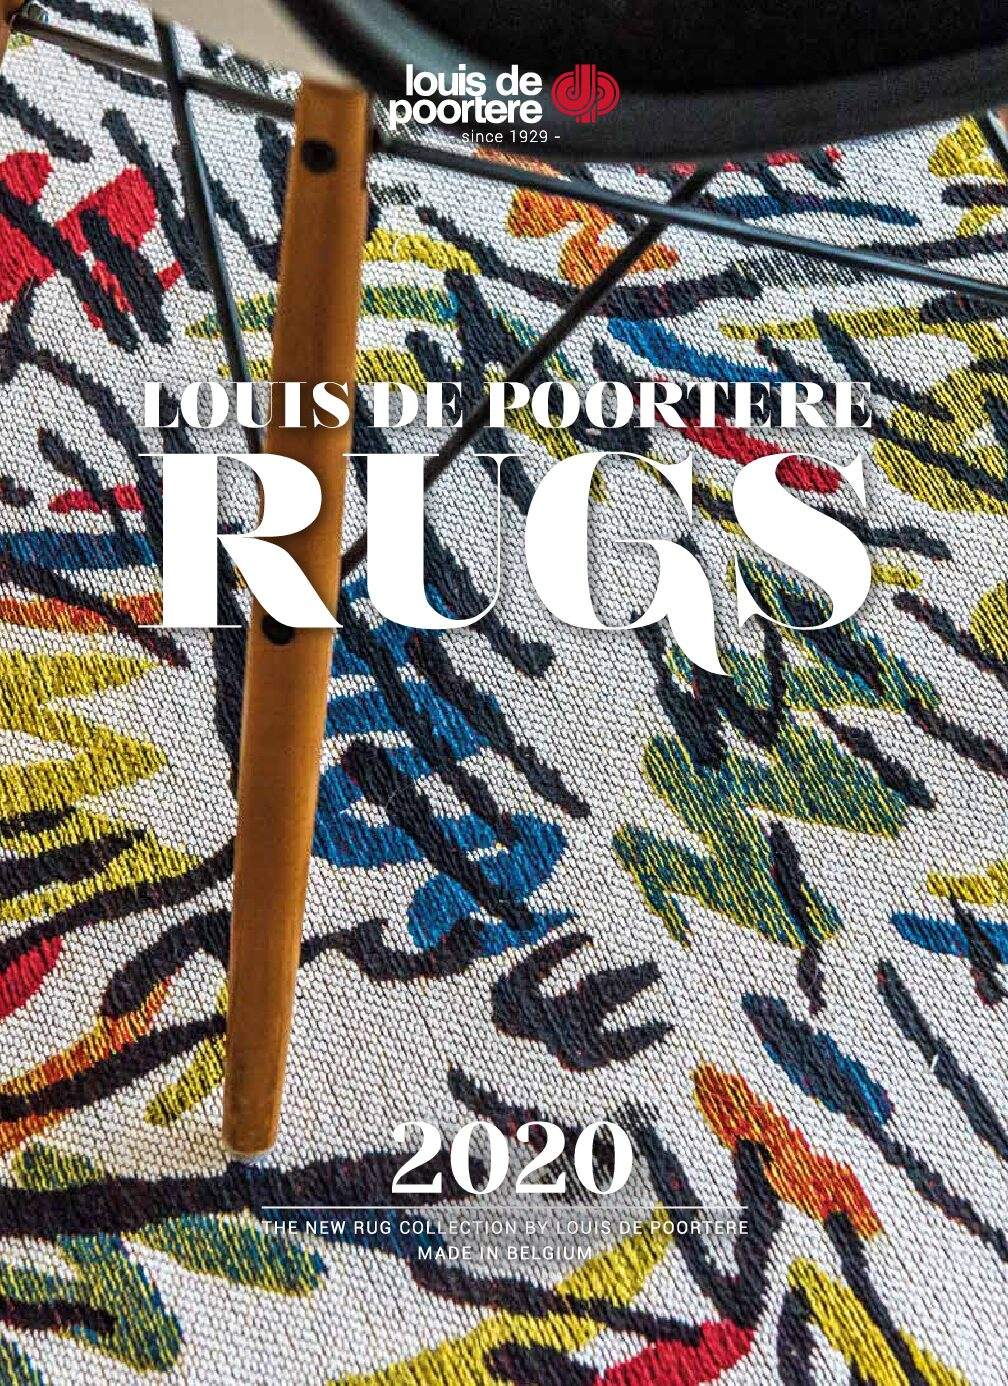 View Rugs Collection 2020